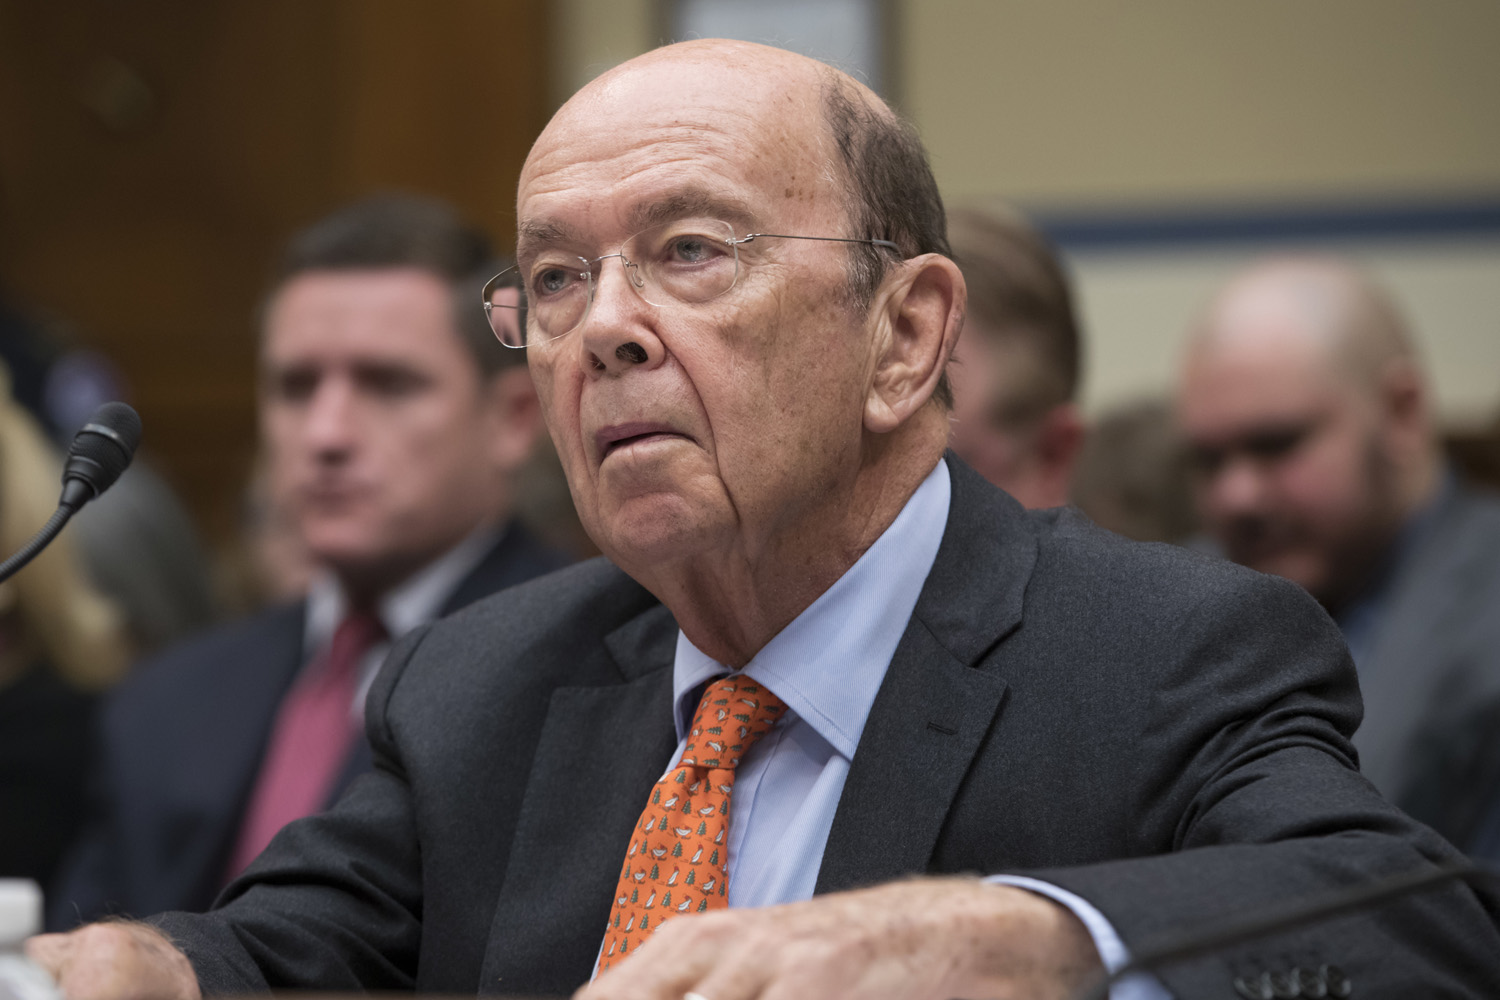 Commerce Secretary Wilbur Ross appears before Congress in October. (J. Scott Applewhite/AP)